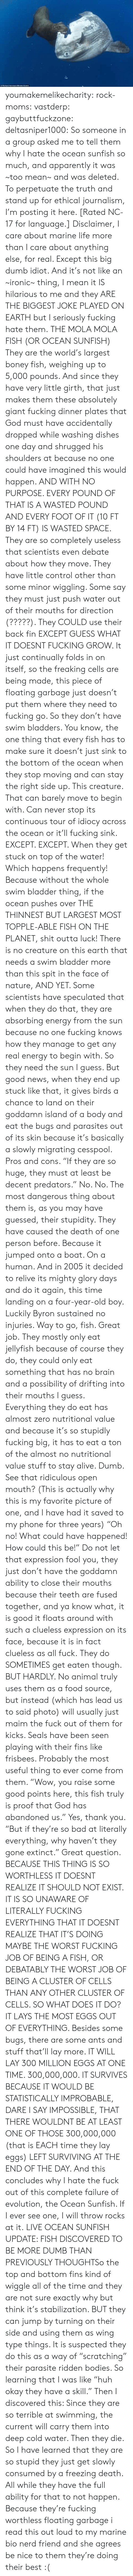 "hardly: ORihad Herrma M  S youmakemelikecharity:  rock-moms:  vastderp:  gaybuttfuckzone:  deltasniper1000:  So someone in a group asked me to tell them why I hate the ocean sunfish so much, and apparently it was ~too mean~ and was deleted. To perpetuate the truth and stand up for ethical journalism, I'm posting it here. [Rated NC-17 for language.]  Disclaimer, I care about marine life more than I care about anything else, for real. Except this big dumb idiot. And it's not like an ~ironic~ thing, I mean it IS hilarious to me and they ARE THE BIGGEST JOKE PLAYED ON EARTH but I seriously fucking hate them.  THE MOLA MOLA FISH (OR OCEAN SUNFISH)  They are the world's largest boney fish, weighing up to 5,000 pounds. And since they have very little girth, that just makes them these absolutely giant fucking dinner plates that God must have accidentally dropped while washing dishes one day and shrugged his shoulders at because no one could have imagined this would happen. AND WITH NO PURPOSE. EVERY POUND OF THAT IS A WASTED POUND AND EVERY FOOT OF IT (10 FT BY 14 FT) IS WASTED SPACE.  They are so completely useless that scientists even debate about how they move. They have little control other than some minor wiggling. Some say they must just push water out of their mouths for direction (?????). They COULD use their back fin EXCEPT GUESS WHAT IT DOESNT FUCKING GROW. It just continually folds in on itself, so the freaking cells are being made, this piece of floating garbage just doesn't put them where they need to fucking go.   So they don't have swim bladders. You know, the one thing that every fish has to make sure it doesn't just sink to the bottom of the ocean when they stop moving and can stay the right side up. This creature. That can barely move to begin with. Can never stop its continuous tour of idiocy across the ocean or it'll fucking sink. EXCEPT. EXCEPT. When they get stuck on top of the water! Which happens frequently! Because without the whole swim bladder thing, if the ocean pushes over THE THINNEST BUT LARGEST MOST TOPPLE-ABLE FISH ON THE PLANET, shit outta luck! There is no creature on this earth that needs a swim bladder more than this spit in the face of nature, AND YET. Some scientists have speculated that when they do that, they are absorbing energy from the sun because no one fucking knows how they manage to get any real energy to begin with. So they need the sun I guess. But good news, when they end up stuck like that, it gives birds a chance to land on their goddamn island of a body and eat the bugs and parasites out of its skin because it's basically a slowly migrating cesspool. Pros and cons.   ""If they are so huge, they must at least be decent predators."" No. No. The most dangerous thing about them is, as you may have guessed, their stupidity. They have caused the death of one person before. Because it jumped onto a boat. On a human. And in 2005 it decided to relive its mighty glory days and do it again, this time landing on a four-year-old boy. Luckily Byron sustained no injuries. Way to go, fish. Great job.  They mostly only eat jellyfish because of course they do, they could only eat something that has no brain and a possibility of drifting into their mouths I guess. Everything they do eat has almost zero nutritional value and because it's so stupidly fucking big, it has to eat a ton of the almost no nutritional value stuff to stay alive. Dumb. See that ridiculous open mouth? (This is actually why this is my favorite picture of one, and I have had it saved to my phone for three years) ""Oh no! What could have happened! How could this be!"" Do not let that expression fool you, they just don't have the goddamn ability to close their mouths because their teeth are fused together, and ya know what, it is good it floats around with such a clueless expression on its face, because it is in fact clueless as all fuck.  They do SOMETIMES get eaten though. BUT HARDLY. No animal truly uses them as a food source, but instead (which has lead us to said photo) will usually just maim the fuck out of them for kicks. Seals have been seen playing with their fins like frisbees. Probably the most useful thing to ever come from them.   ""Wow, you raise some good points here, this fish truly is proof that God has abandoned us."" Yes, thank you. ""But if they're so bad at literally everything, why haven't they gone extinct."" Great question.   BECAUSE THIS THING IS SO WORTHLESS IT DOESNT REALIZE IT SHOULD NOT EXIST. IT IS SO UNAWARE OF LITERALLY FUCKING EVERYTHING THAT IT DOESNT REALIZE THAT IT'S DOING MAYBE THE WORST FUCKING JOB OF BEING A FISH, OR DEBATABLY THE WORST JOB OF BEING A CLUSTER OF CELLS THAN ANY OTHER CLUSTER OF CELLS. SO WHAT DOES IT DO? IT LAYS THE MOST EGGS OUT OF EVERYTHING. Besides some bugs, there are some ants and stuff that'll lay more. IT WILL LAY 300 MILLION EGGS AT ONE TIME. 300,000,000. IT SURVIVES BECAUSE IT WOULD BE STATISTICALLY IMPROBABLE, DARE I SAY IMPOSSIBLE, THAT THERE WOULDNT BE AT LEAST ONE OF THOSE 300,000,000 (that is EACH time they lay eggs) LEFT SURVIVING AT THE END OF THE DAY.   And this concludes why I hate the fuck out of this complete failure of evolution, the Ocean Sunfish. If I ever see one, I will throw rocks at it.   LIVE OCEAN SUNFISH UPDATE: FISH DISCOVERED TO BE MORE DUMB THAN PREVIOUSLY THOUGHTSo  the top and bottom fins kind of wiggle all of the time and they are not  sure exactly why but think it's stabilization. BUT they can jump by  turning on their side and using them as  wing type things. It is suspected they do this as a way of ""scratching""  their parasite ridden bodies. So learning that I was like ""huh okay they  have a skill."" Then I discovered this: Since they  are so terrible at swimming, the current will carry them into deep cold  water. Then they die. So I have learned that they are so stupid they  just get slowly consumed by a freezing death. All while they have the  full ability for that to not happen. Because they're fucking worthless  floating garbage    i read this out loud to my marine bio nerd friend and she agrees   be nice to them they're doing their best :("